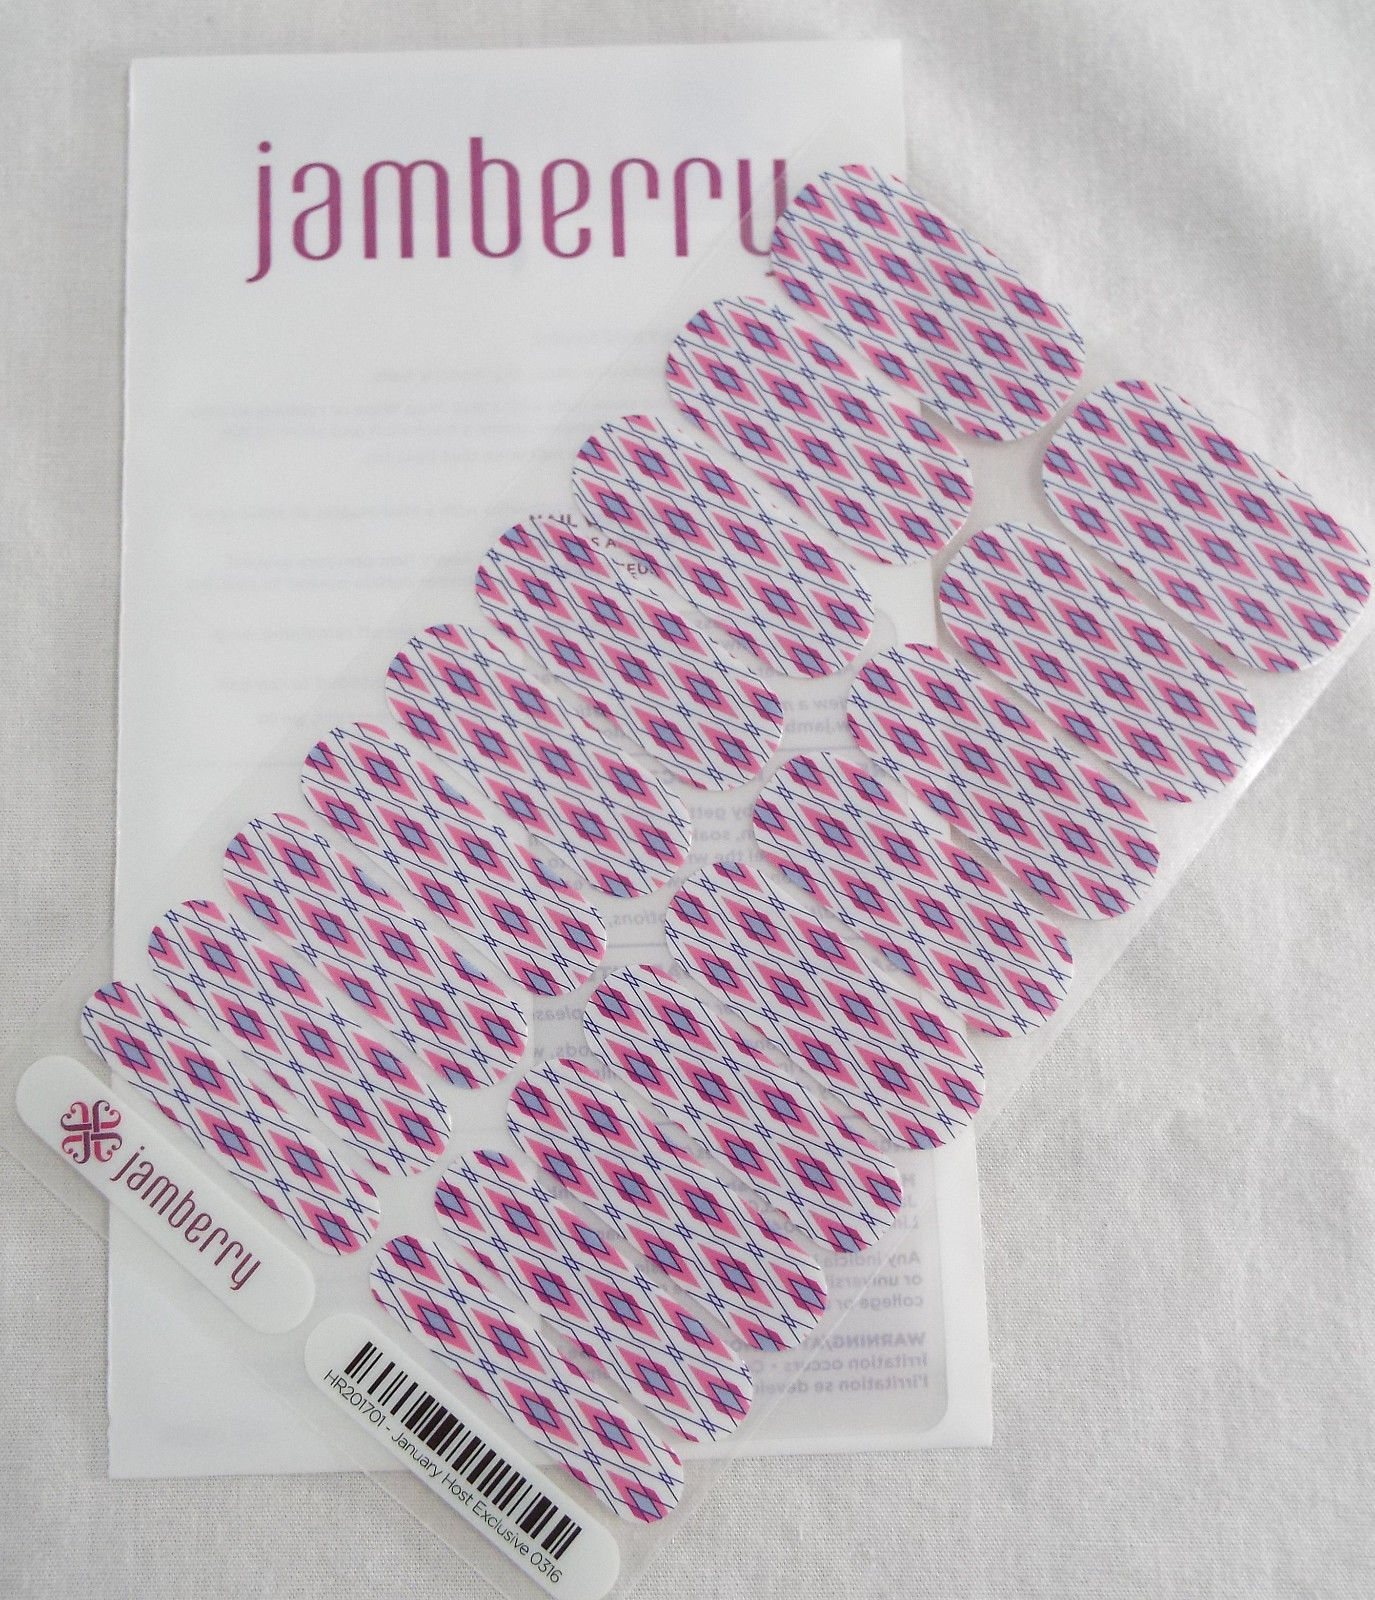 Primary image for Jamberry January 2017 Host Exclusive 0316 HR201701  (Full Sheet) Nail Wrap